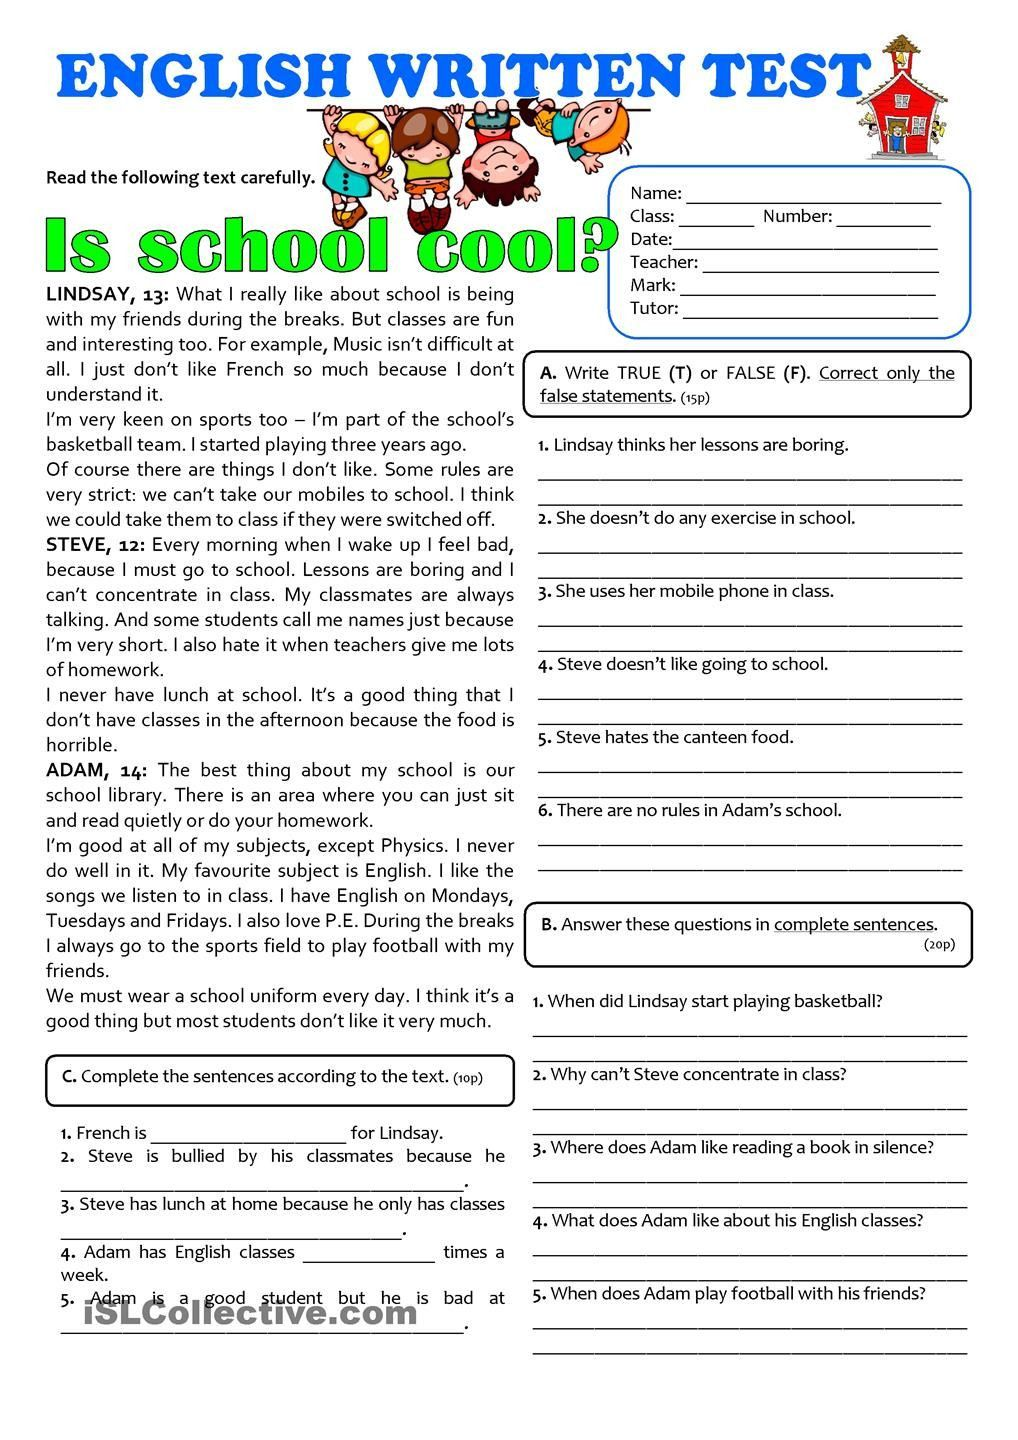 2 3rd Grade Reading Worksheets For Synonyms Pin On Esl Worksheets Of The Day Reading Comprehension Worksheets Printable English Worksheets Reading Worksheets